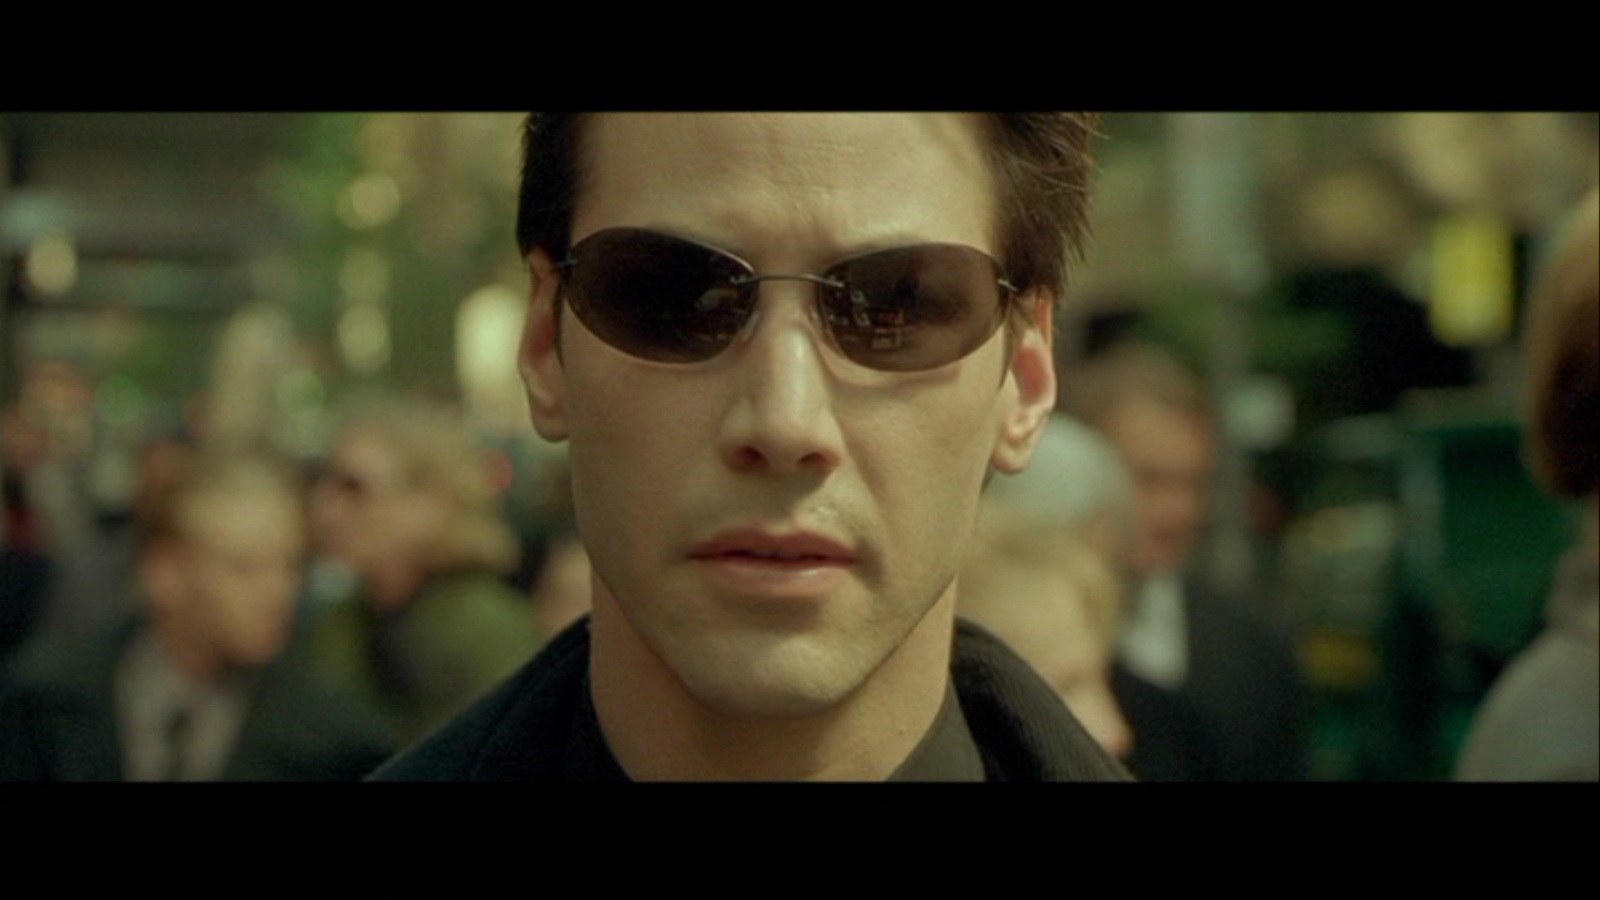 neo!! - The Matrix Image (18669627) - Fanpop